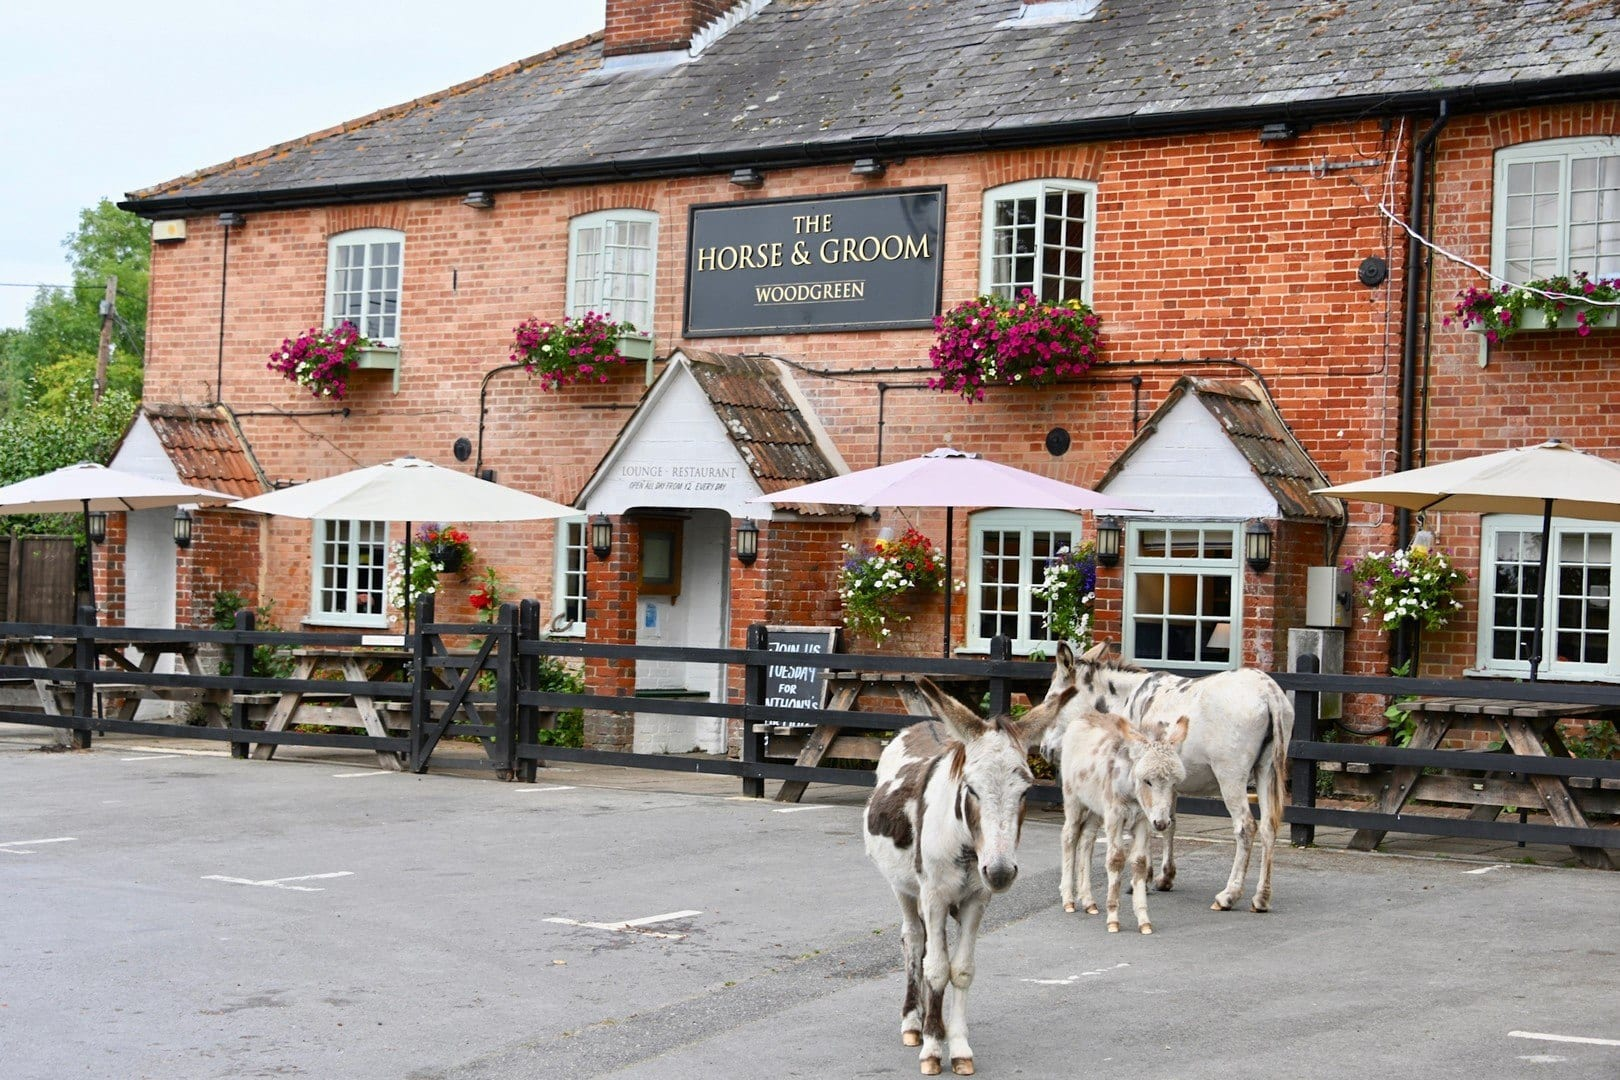 Donkeys roam the villages and towns of the New Forest